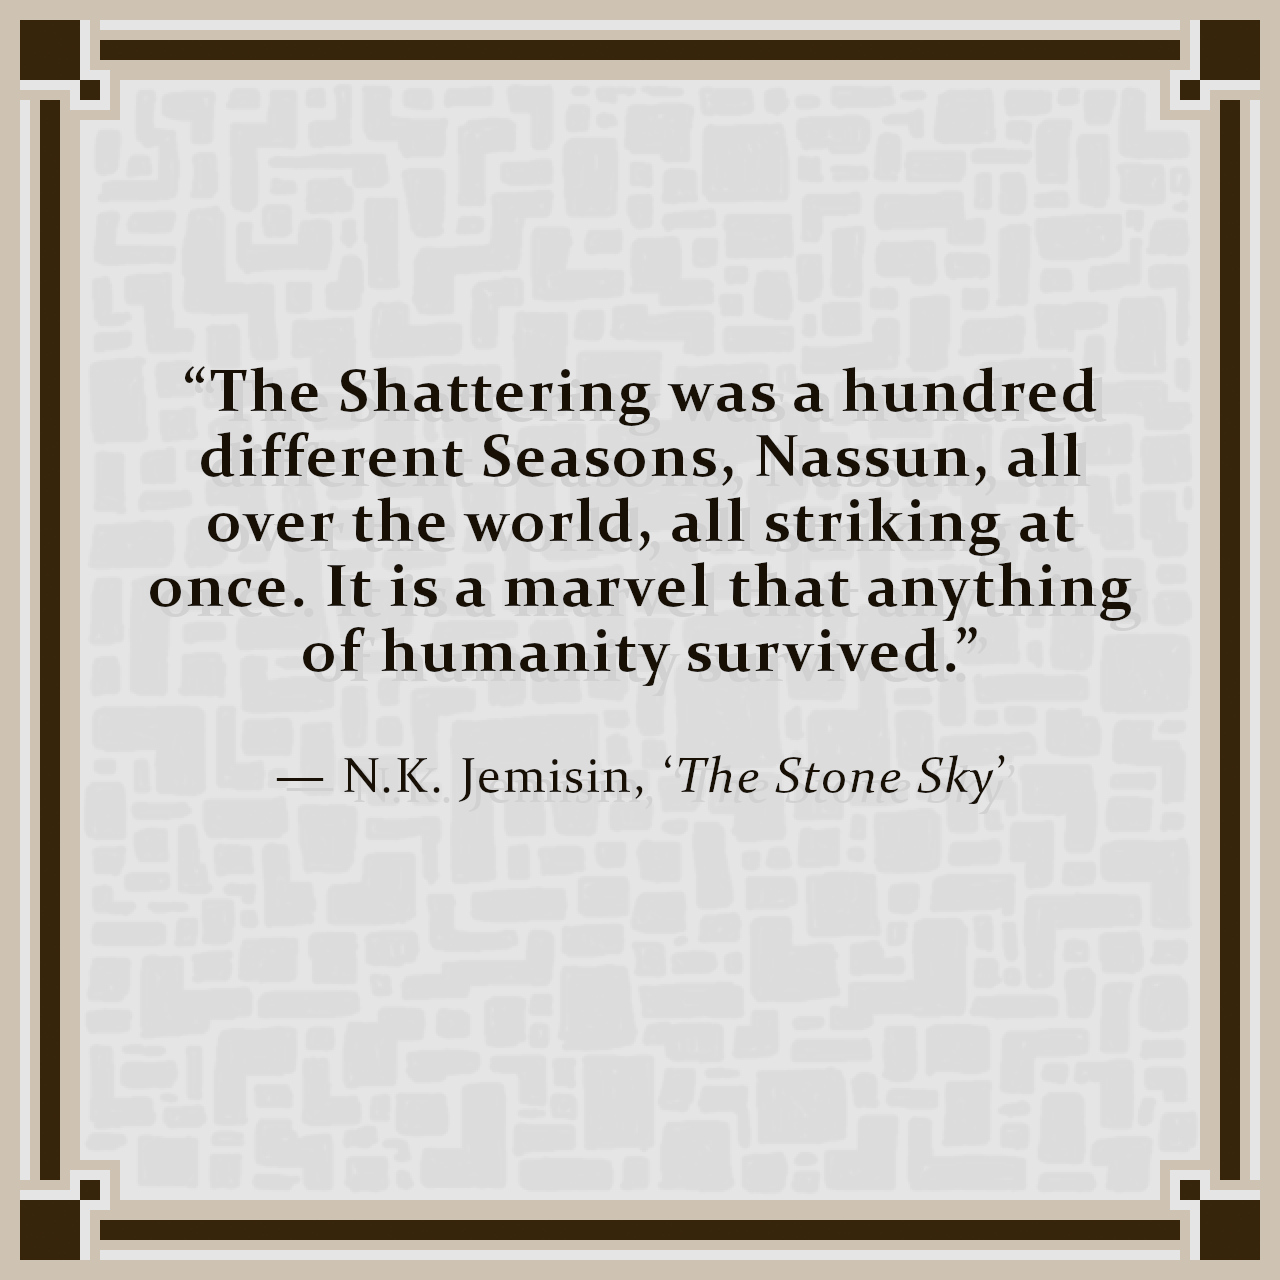 """""""The Shattering was a hundred different Seasons, Nassun, all over the world, all striking at once. It is a marvel that anything of humanity survived."""" — N.K. Jemisin, 'The Stone Sky'"""